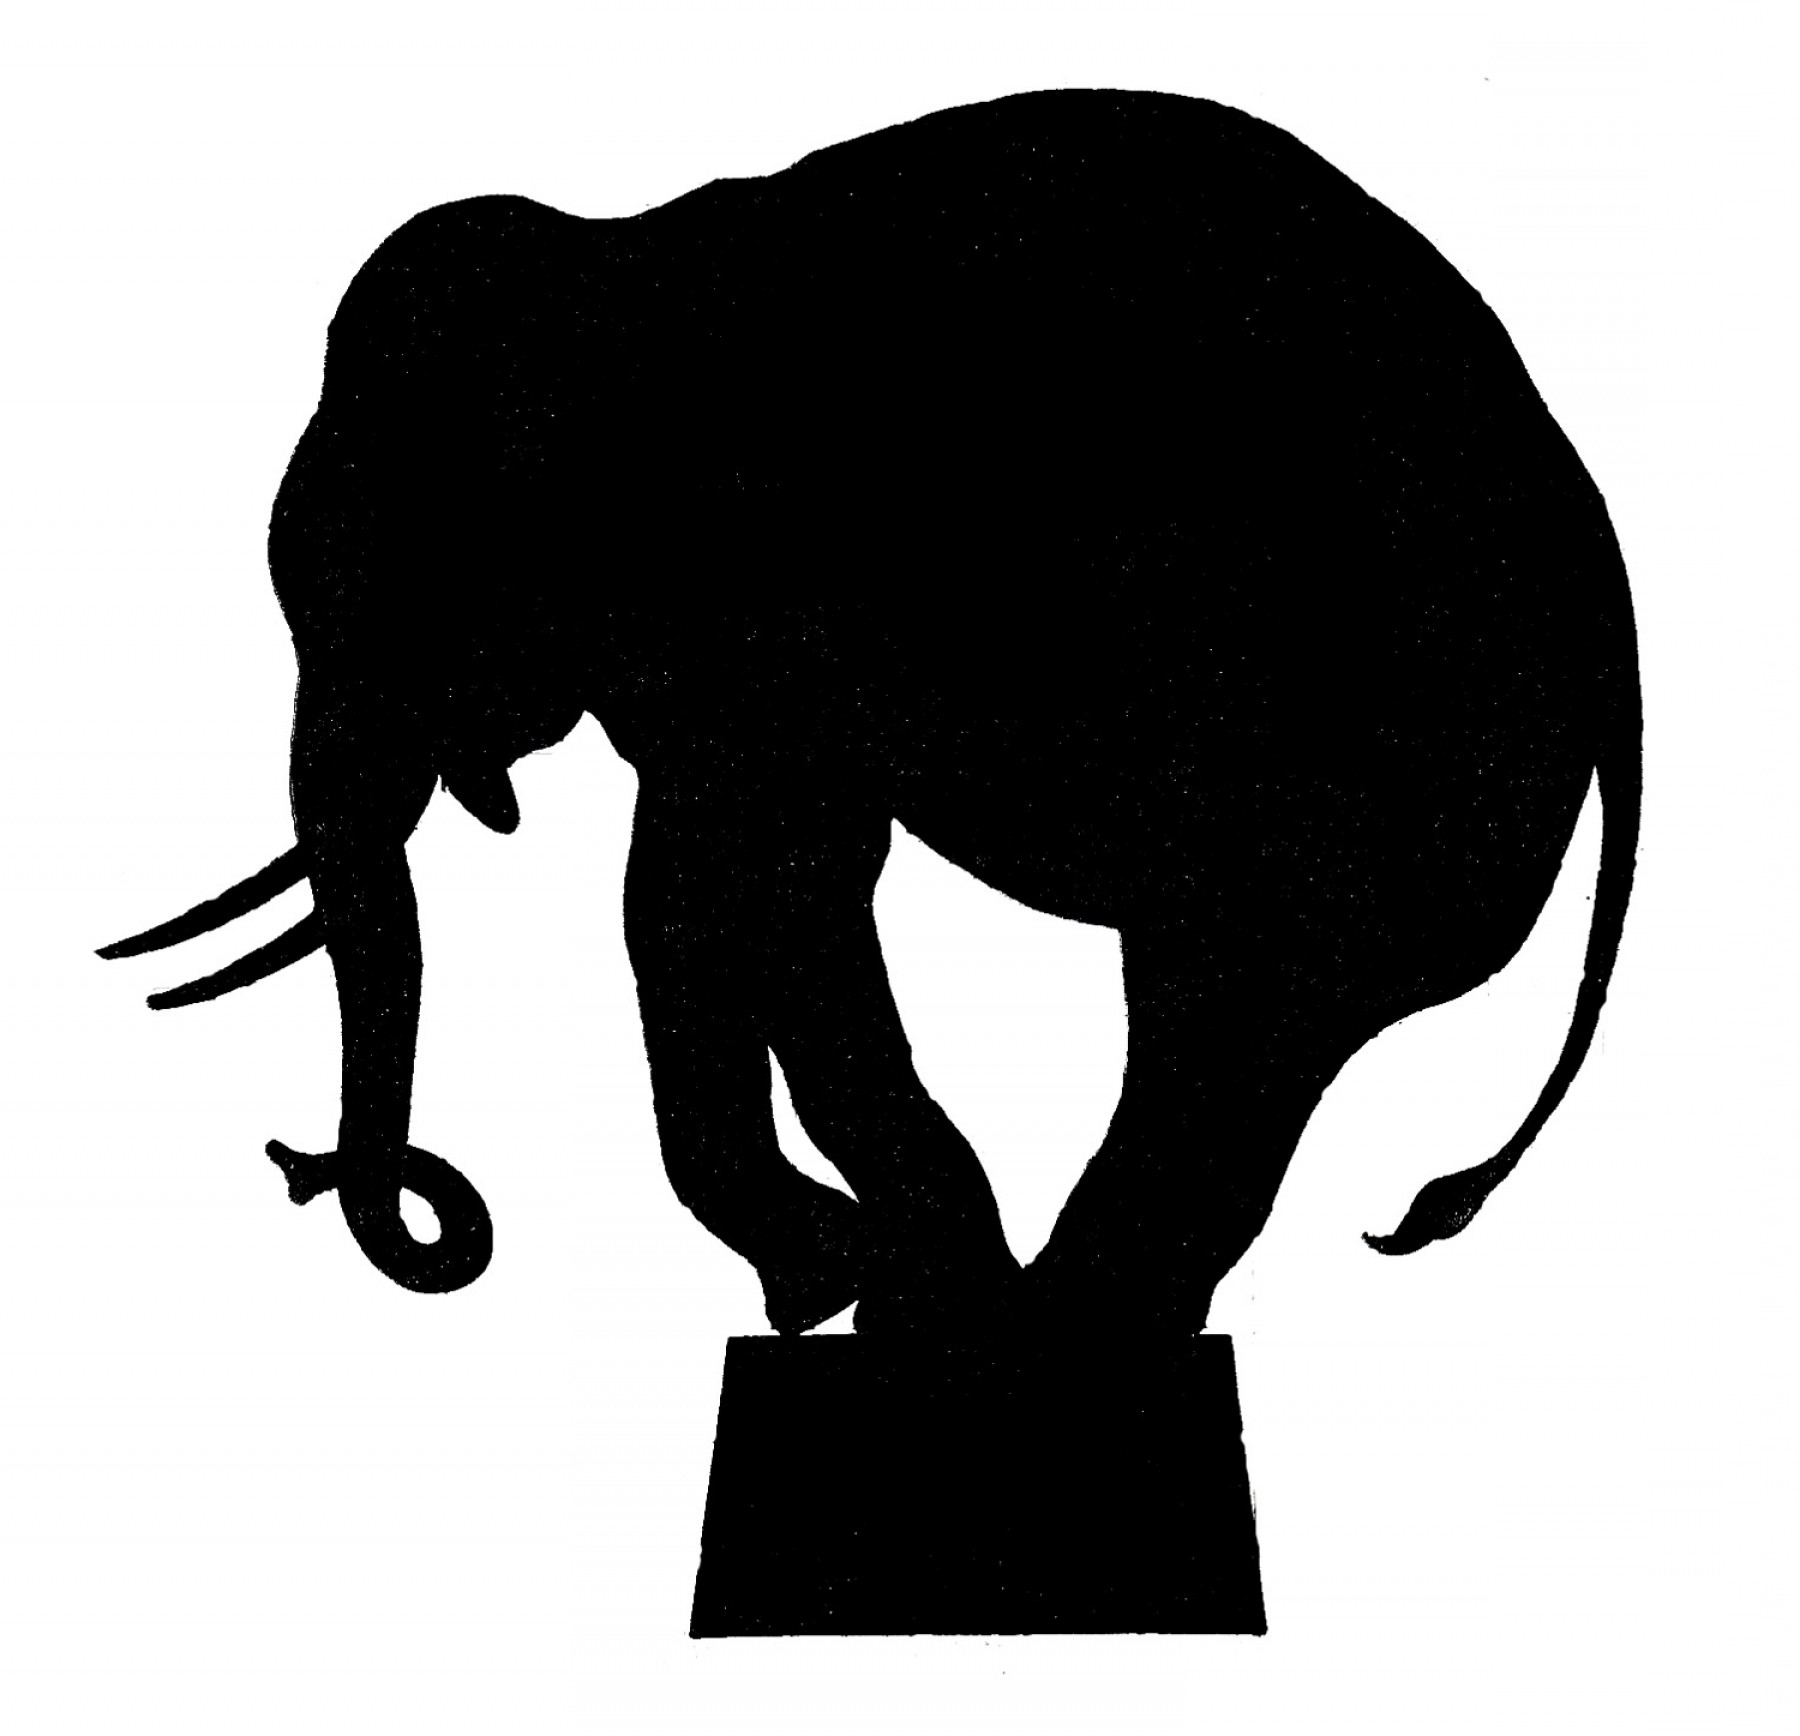 Circus Animals Vector Graphic: Vector Image Downloads Circus Elephant Silhouette